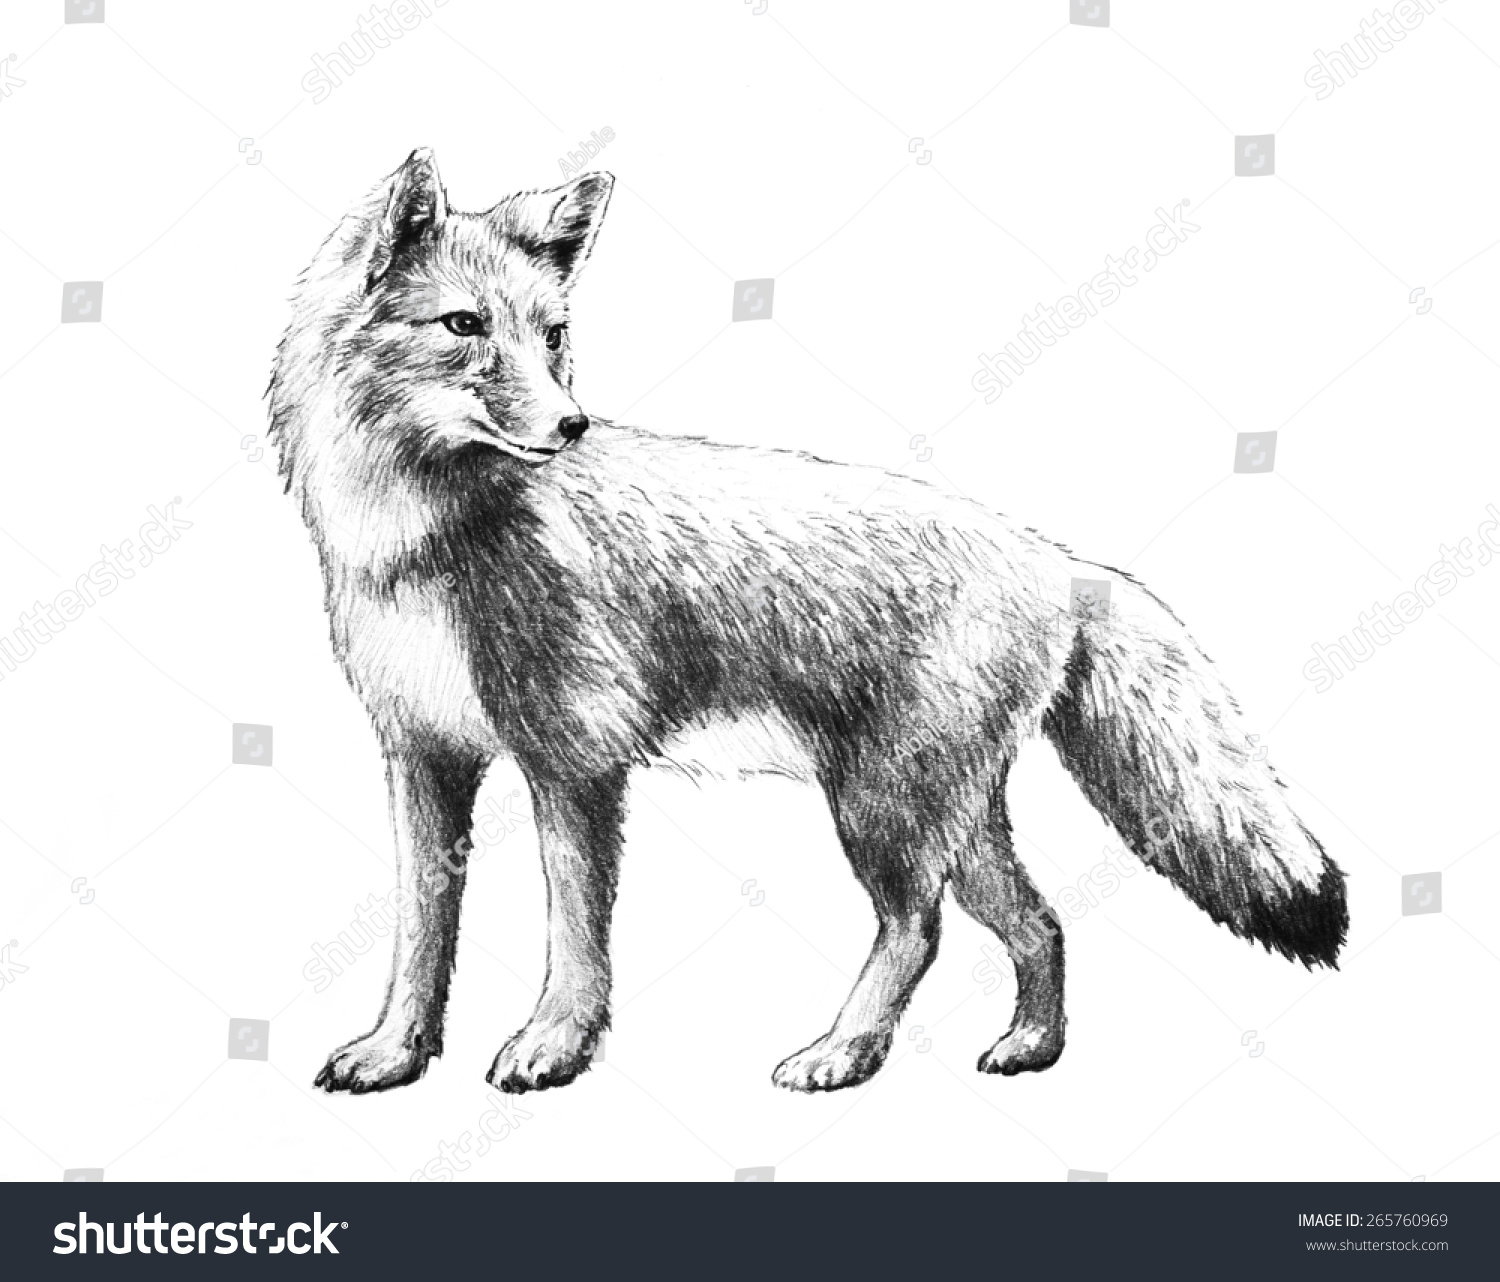 Red Fox Pencil Drawing